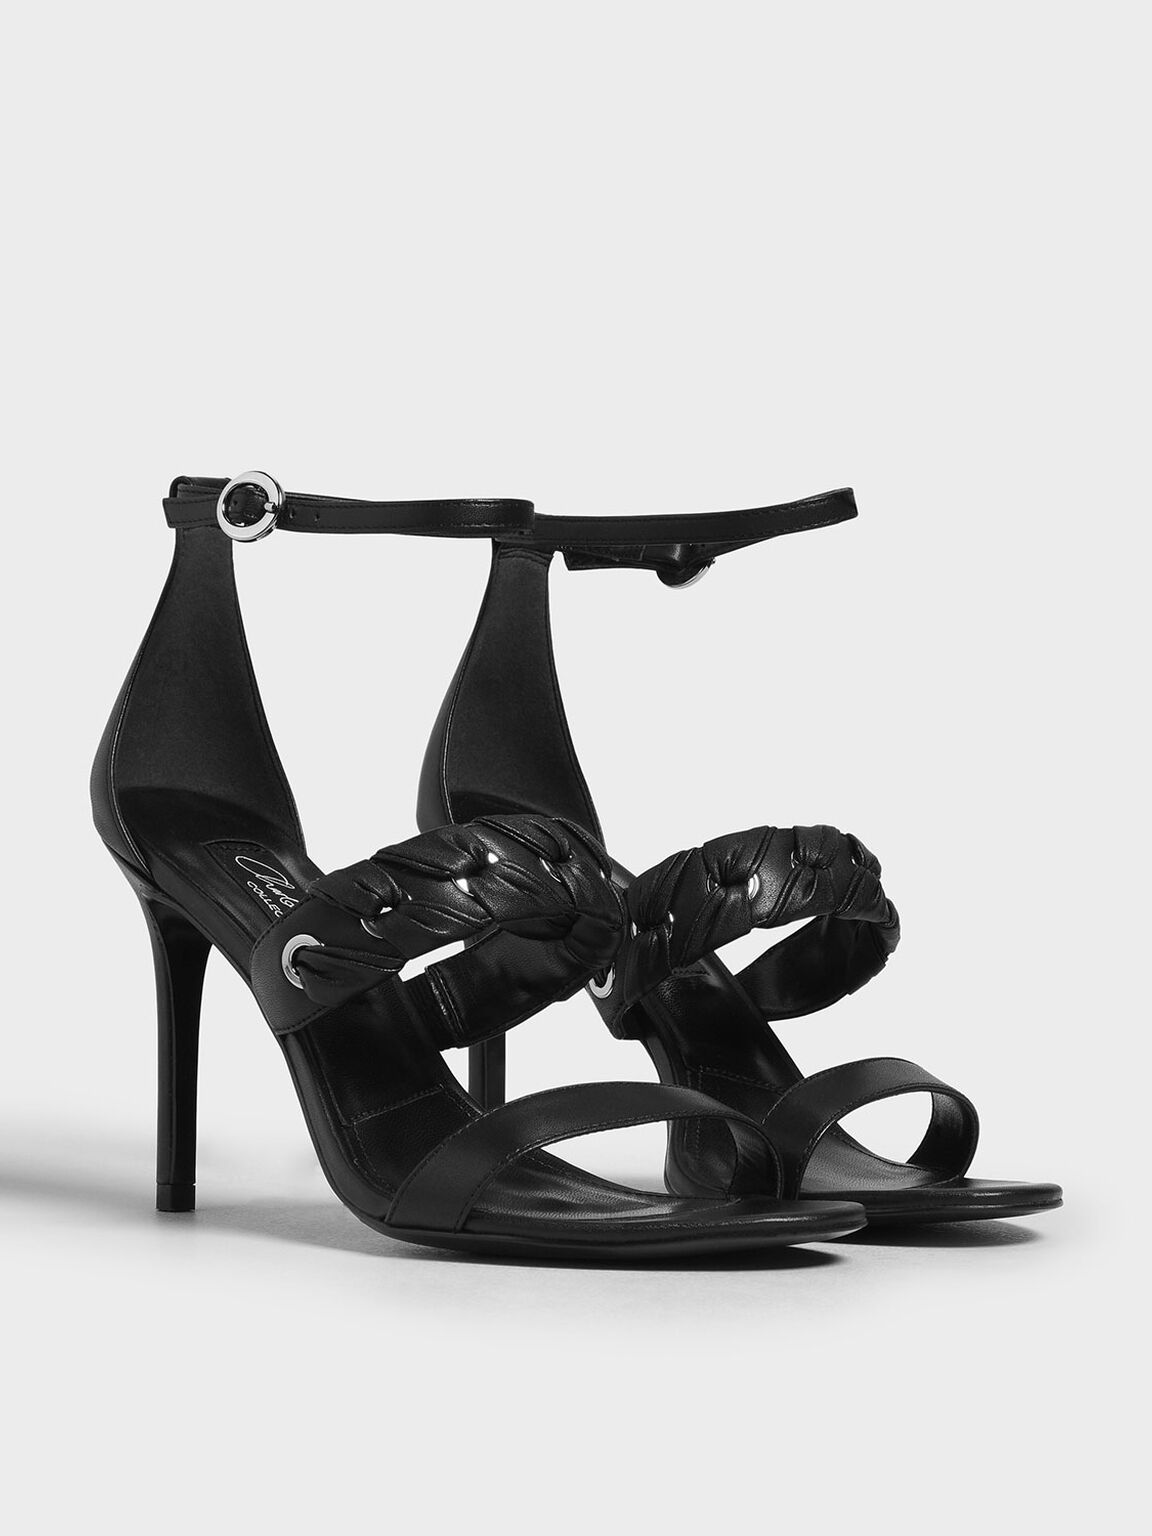 Weave Detail Leather Stiletto Heels, Black, hi-res